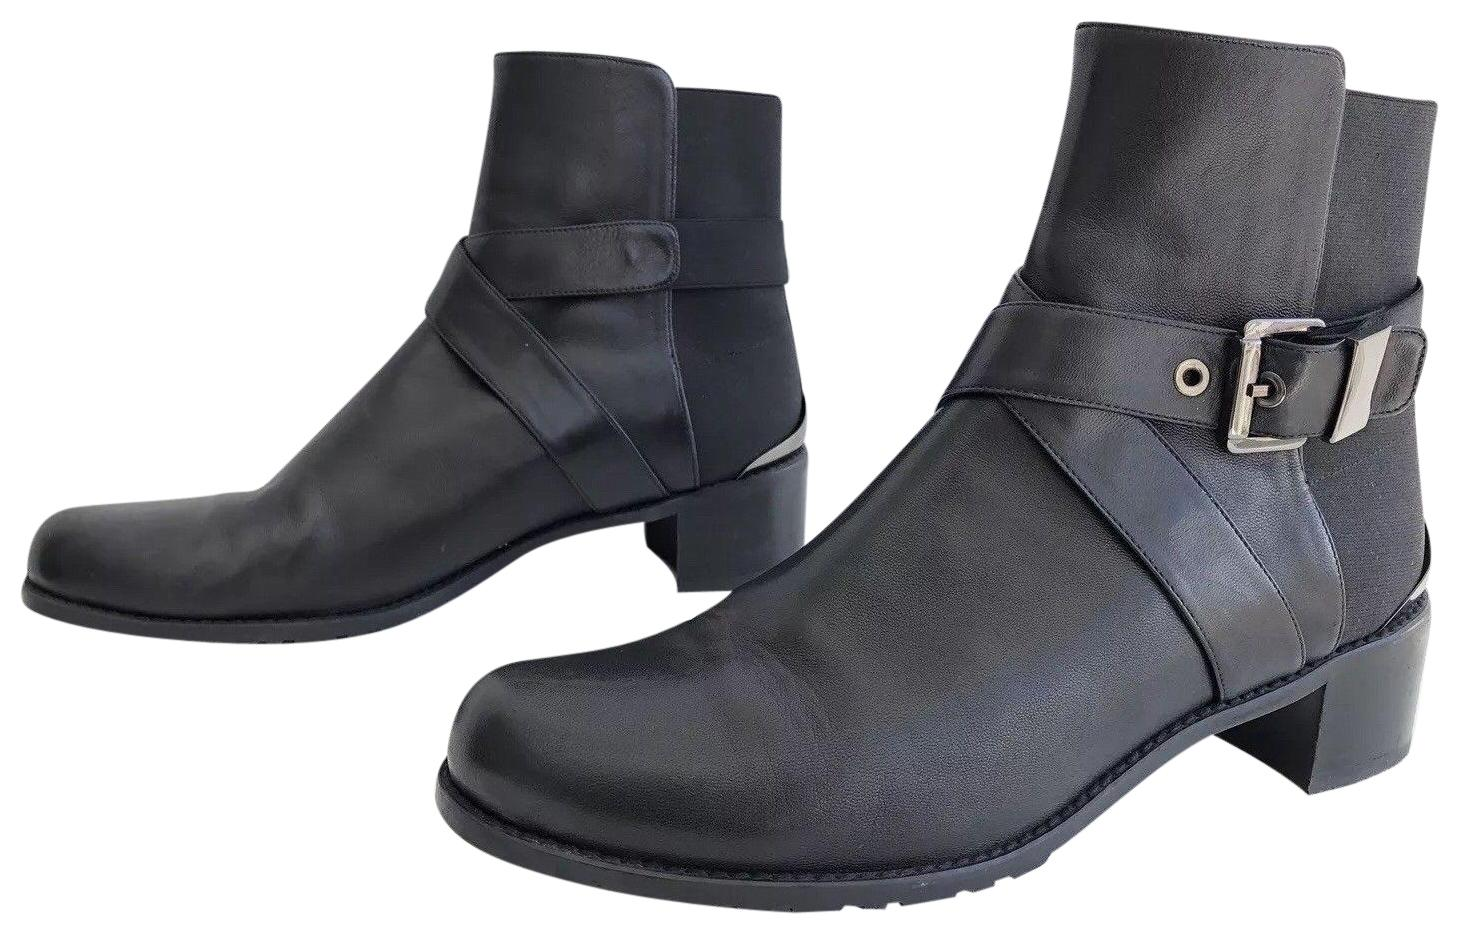 Stuart US Weitzman Black Manlow Stretch-back Buckled Ankle Boots/Booties Size US Stuart 10 Regular (M, B) becd3c